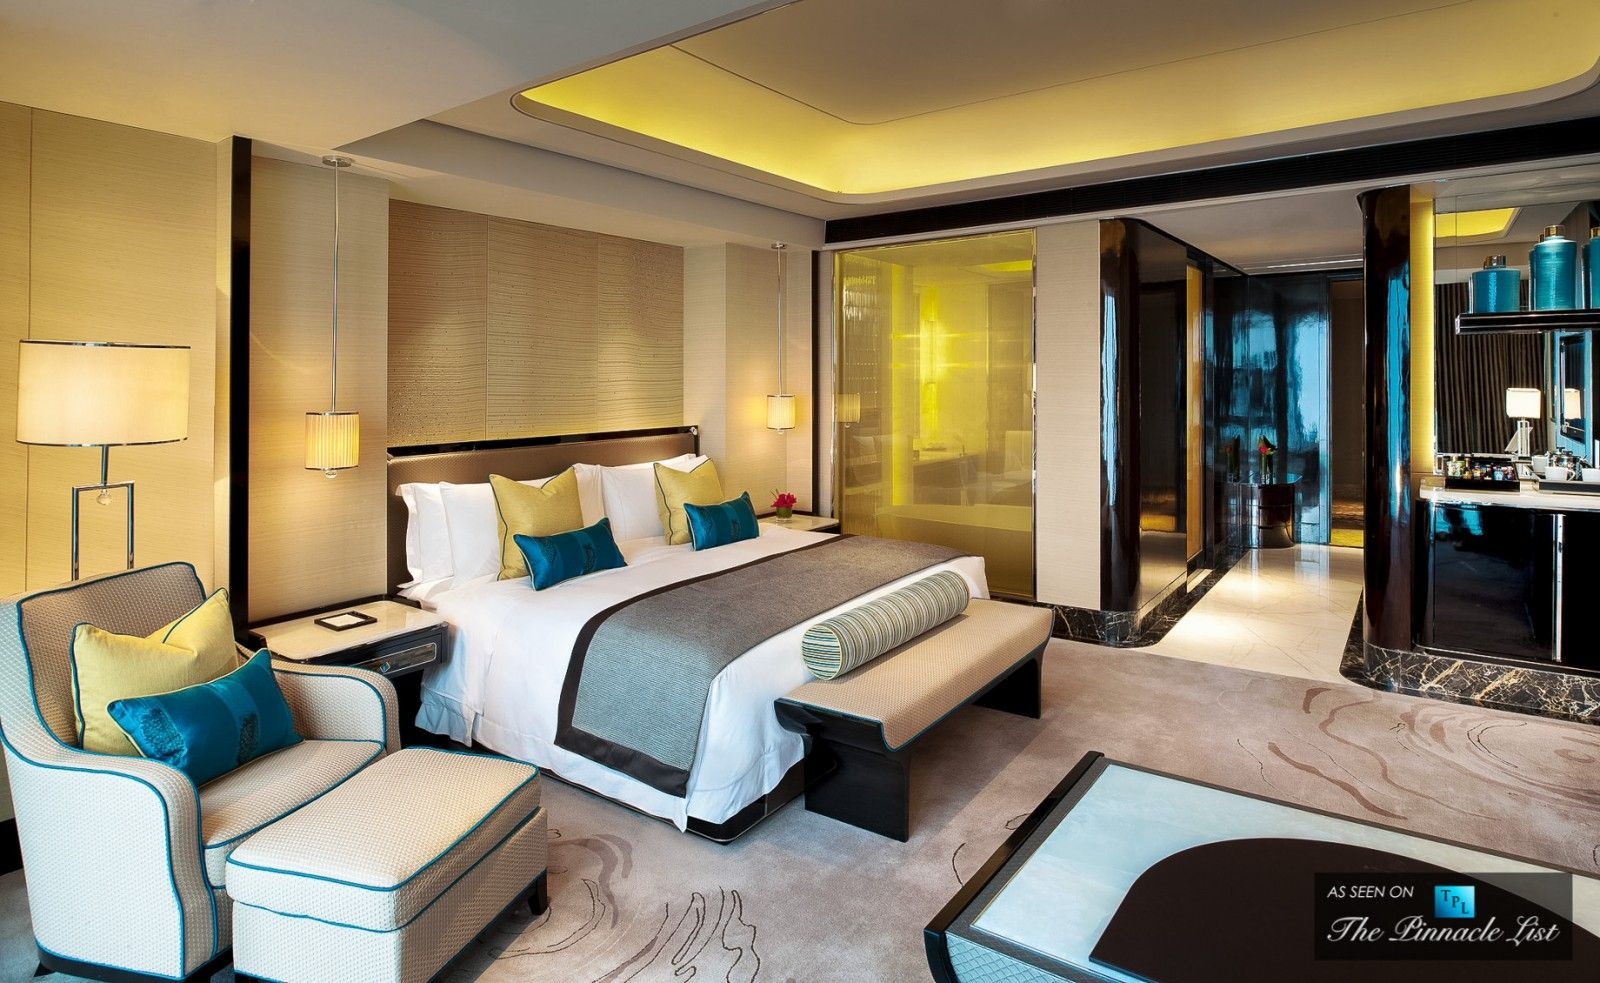 Comfort abounds in this hotel suite st regis luxury hotel shenzhen china